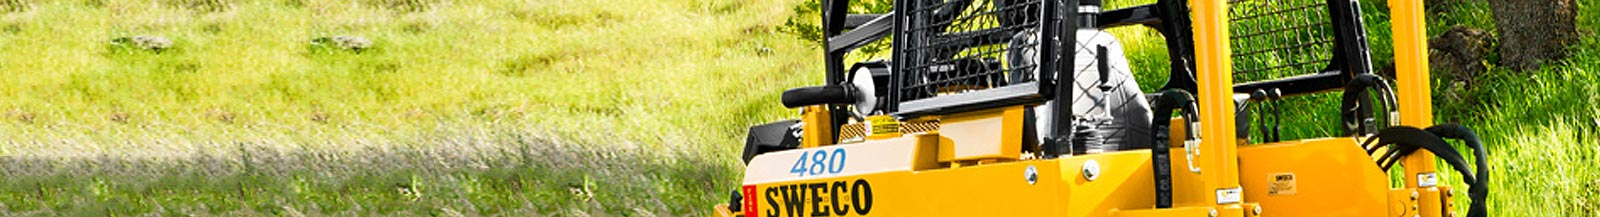 SWECO PRODUCTS, INC.